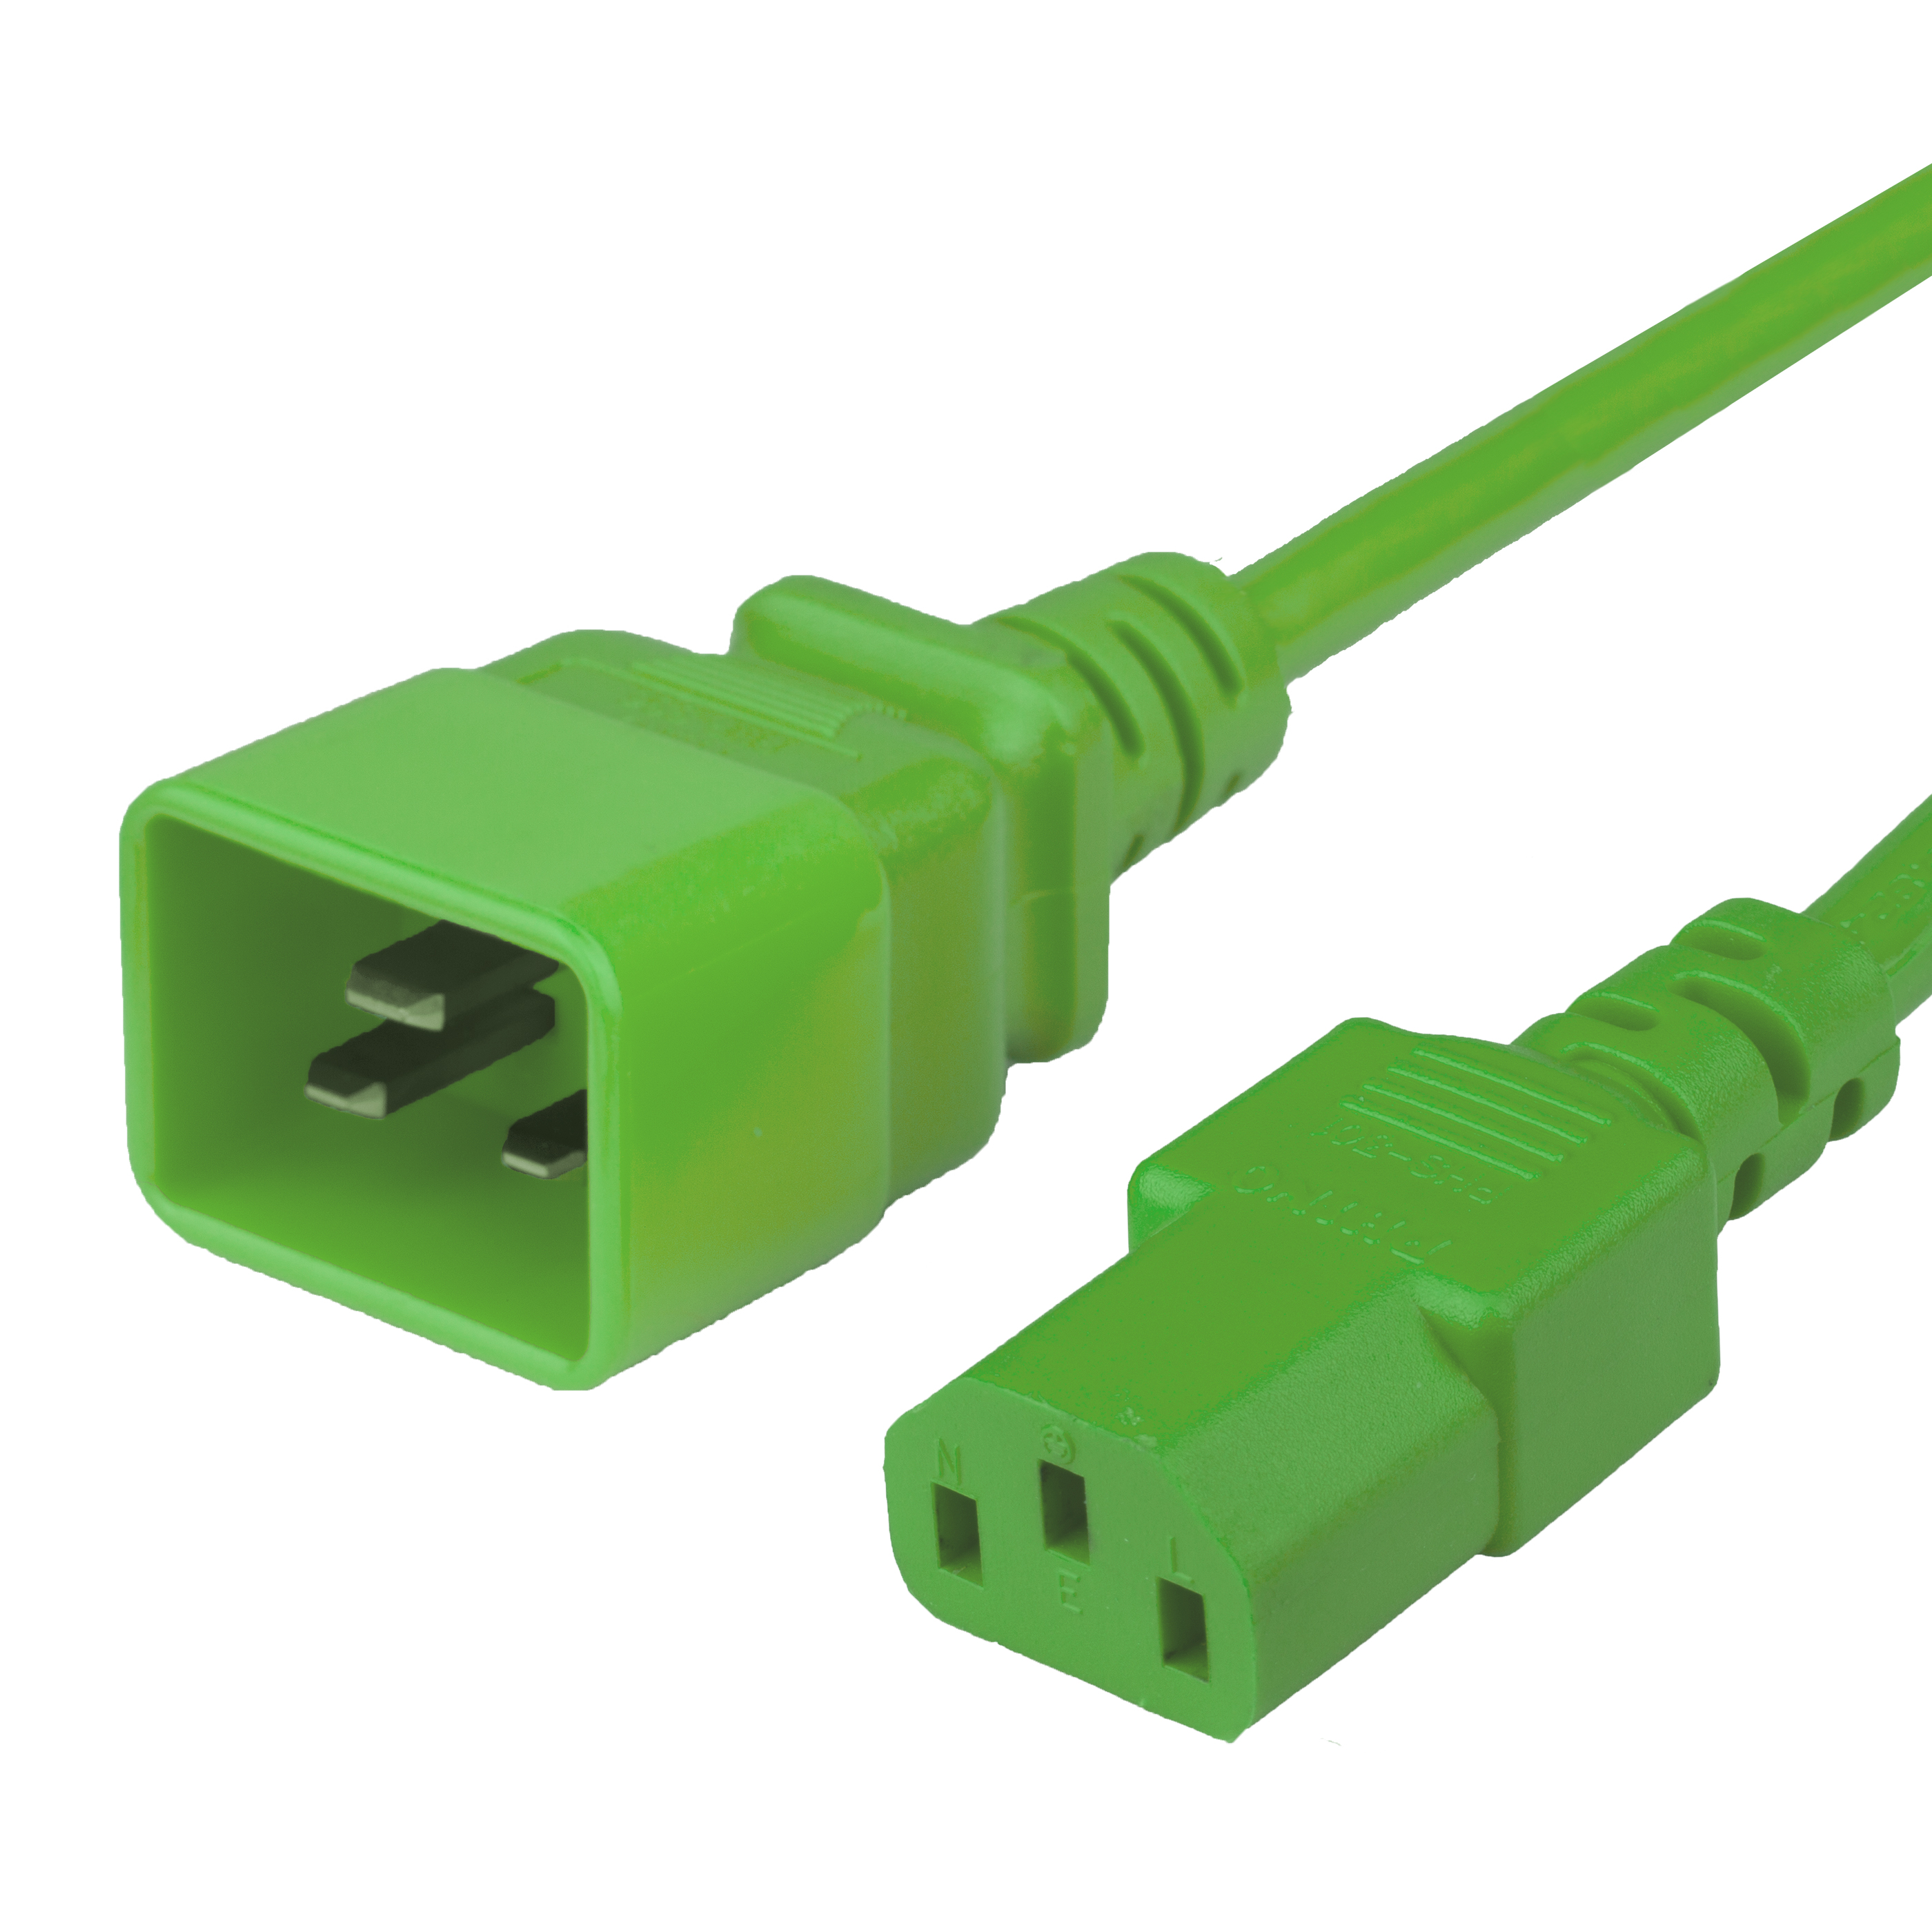 1FT C20 C13 15A 250V GREEN Power Cord